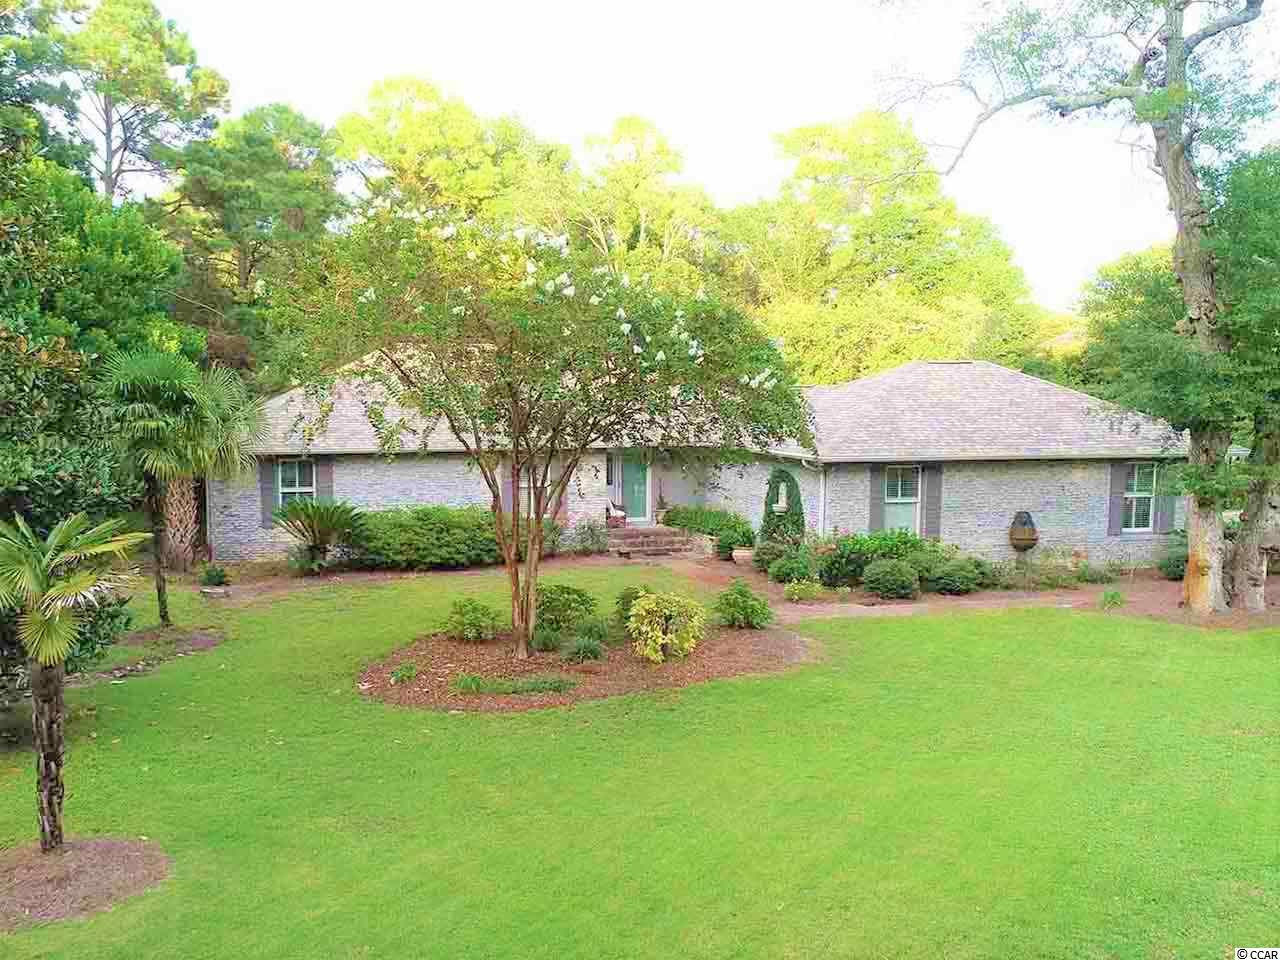 Private Beach access! Maintenance free brick, 4 bedroom 2 1/2 bath ranch style home , one floor, wide open spaces that create a very informal and casual living style .Move in ready with Lots of closet space and 2 pull down attics. The Sun room overlooks the Koi fish pond and Live oak trees in the back yard. The living room has a wood burning fireplace with a wood mantel that came from an old shipwreck. The living room is open to the dining area and hard wood flooring throughout the home. The kitchen and baths have been updated. Plenty of room for family and friends in the Cozy large Carolina Room/Den area off the kitchen. Upgraded fixtures and appliances. The lot is .46 of an acre with a Fenced in yard. Arcadian Shores Golf Club is a very short walk! The beautiful 7 Acre private Lake at the end of the street. Close to shopping, medical and restaurants and a walk to the Beach but the neighborhood has that tucked away feeling from the traffic and tourist.